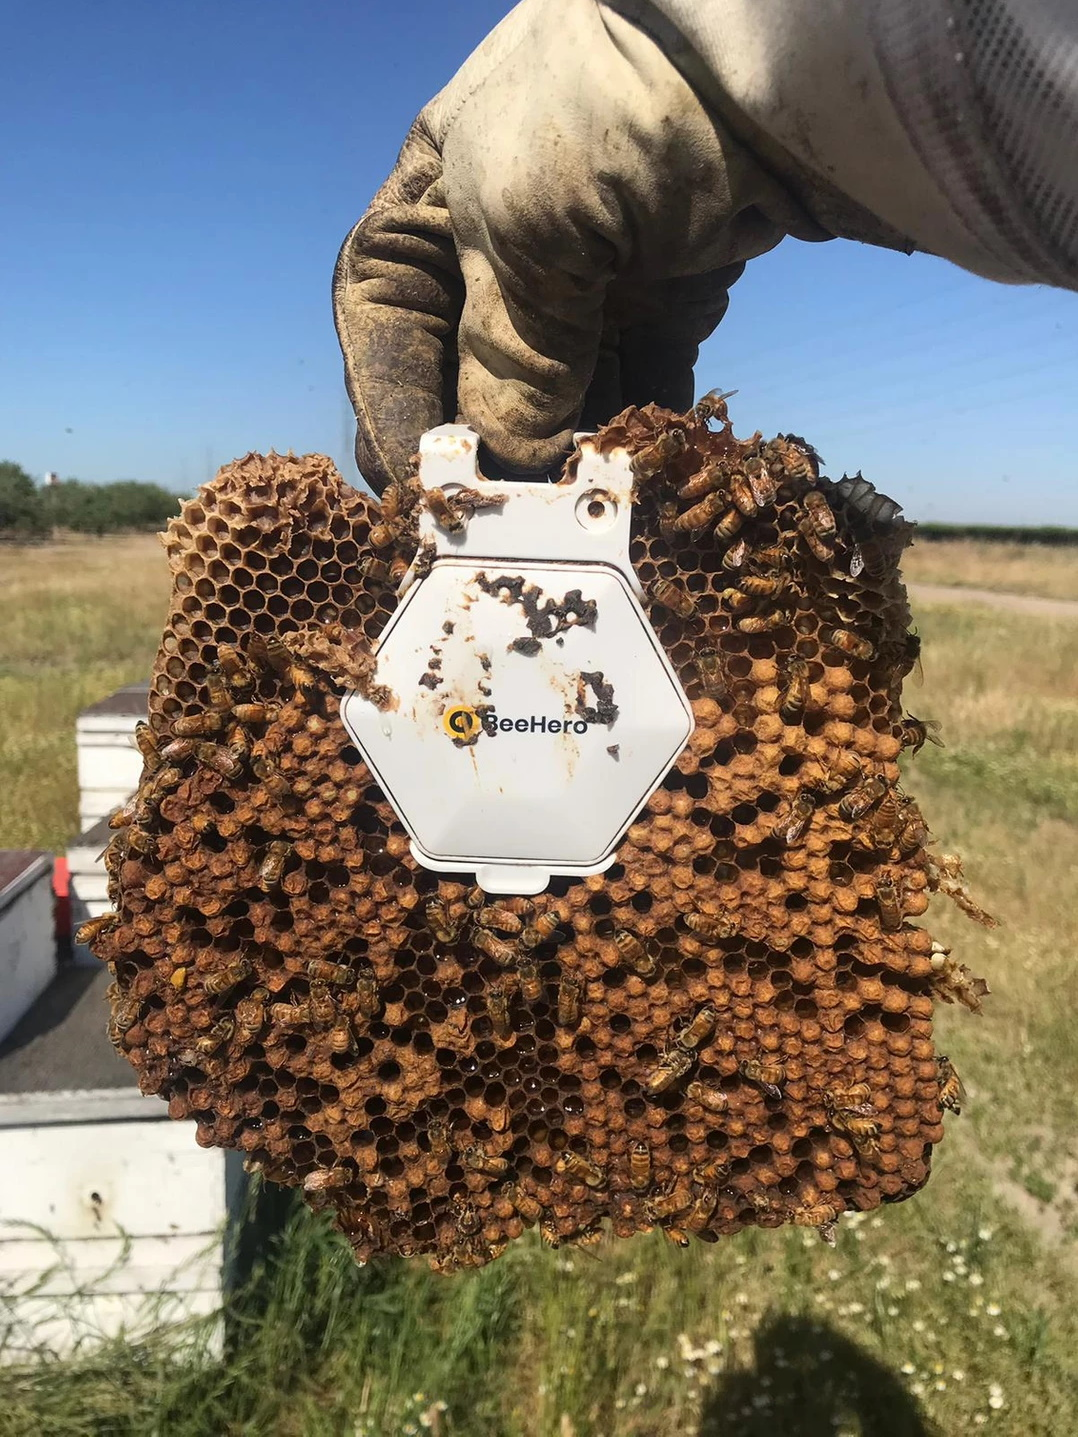 BeeHero smartens up hives to provide 'pollination as a service' with $4M seed round